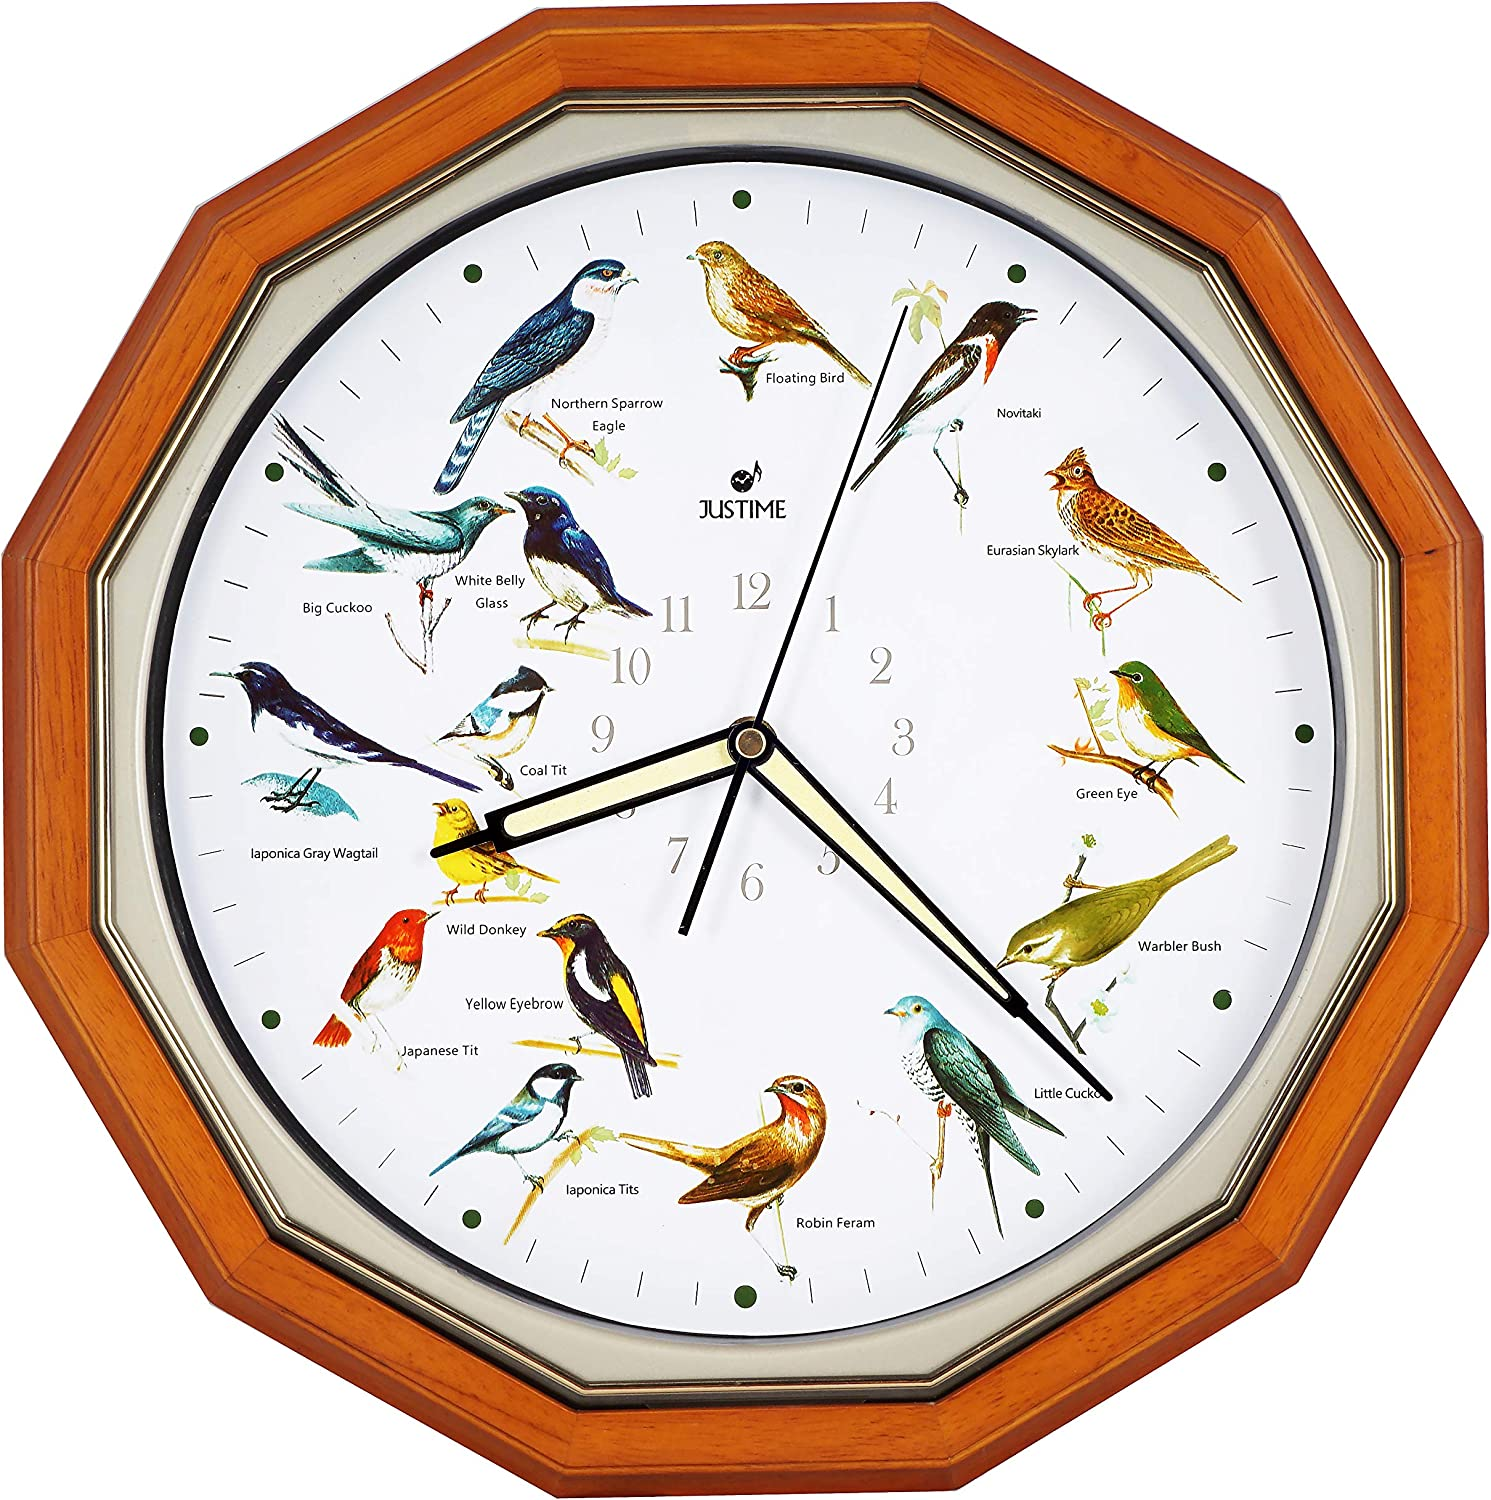 JUSTIME Plays 16 Popular Bird's Songs Triple Chime Music 14-inch Dodecagon Solid Wood Wall Clock Home Deco Multicolor - TCBD060